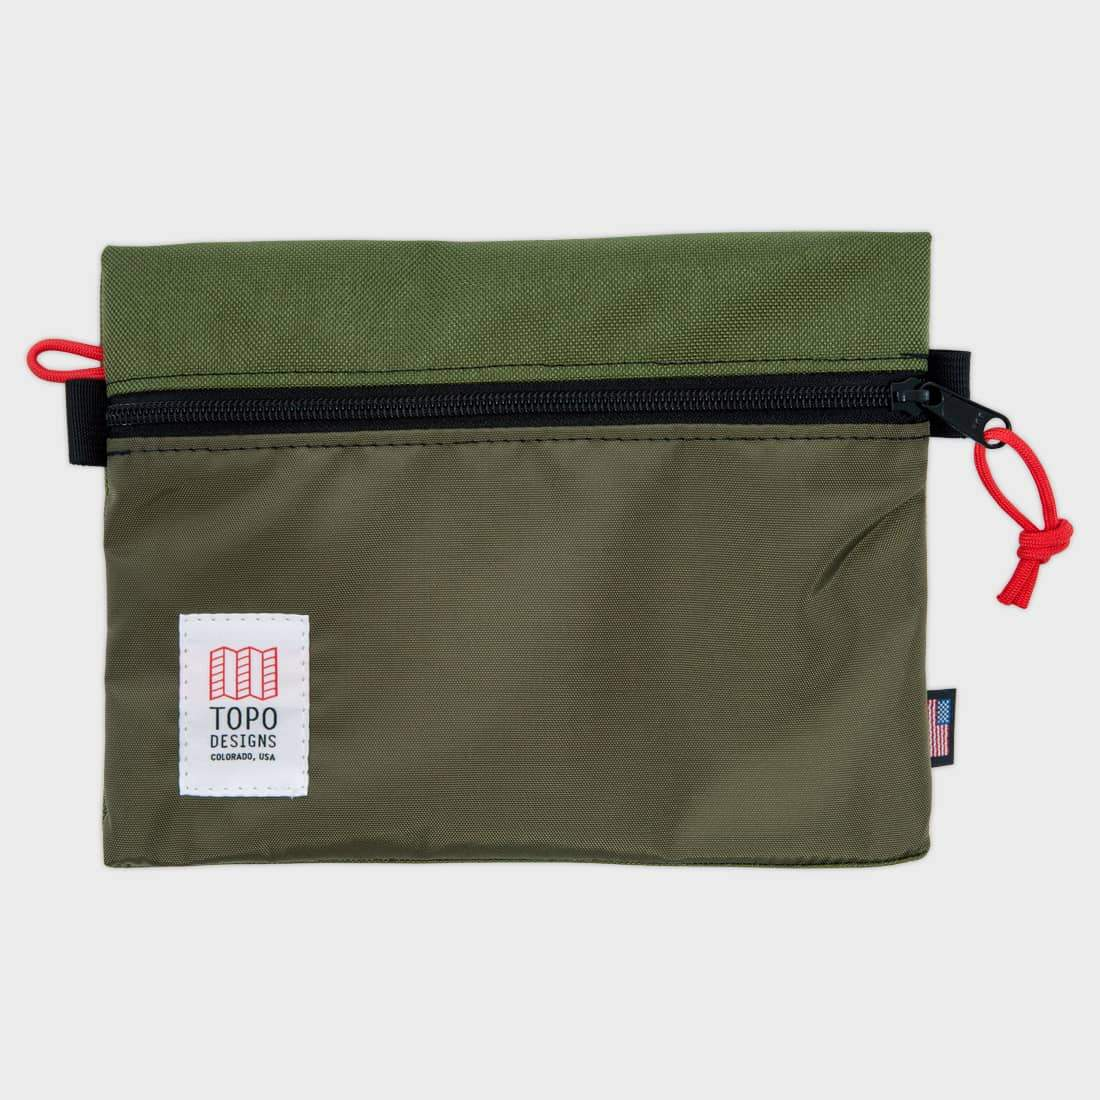 Topo Designs Accessory Bag Medium Olive